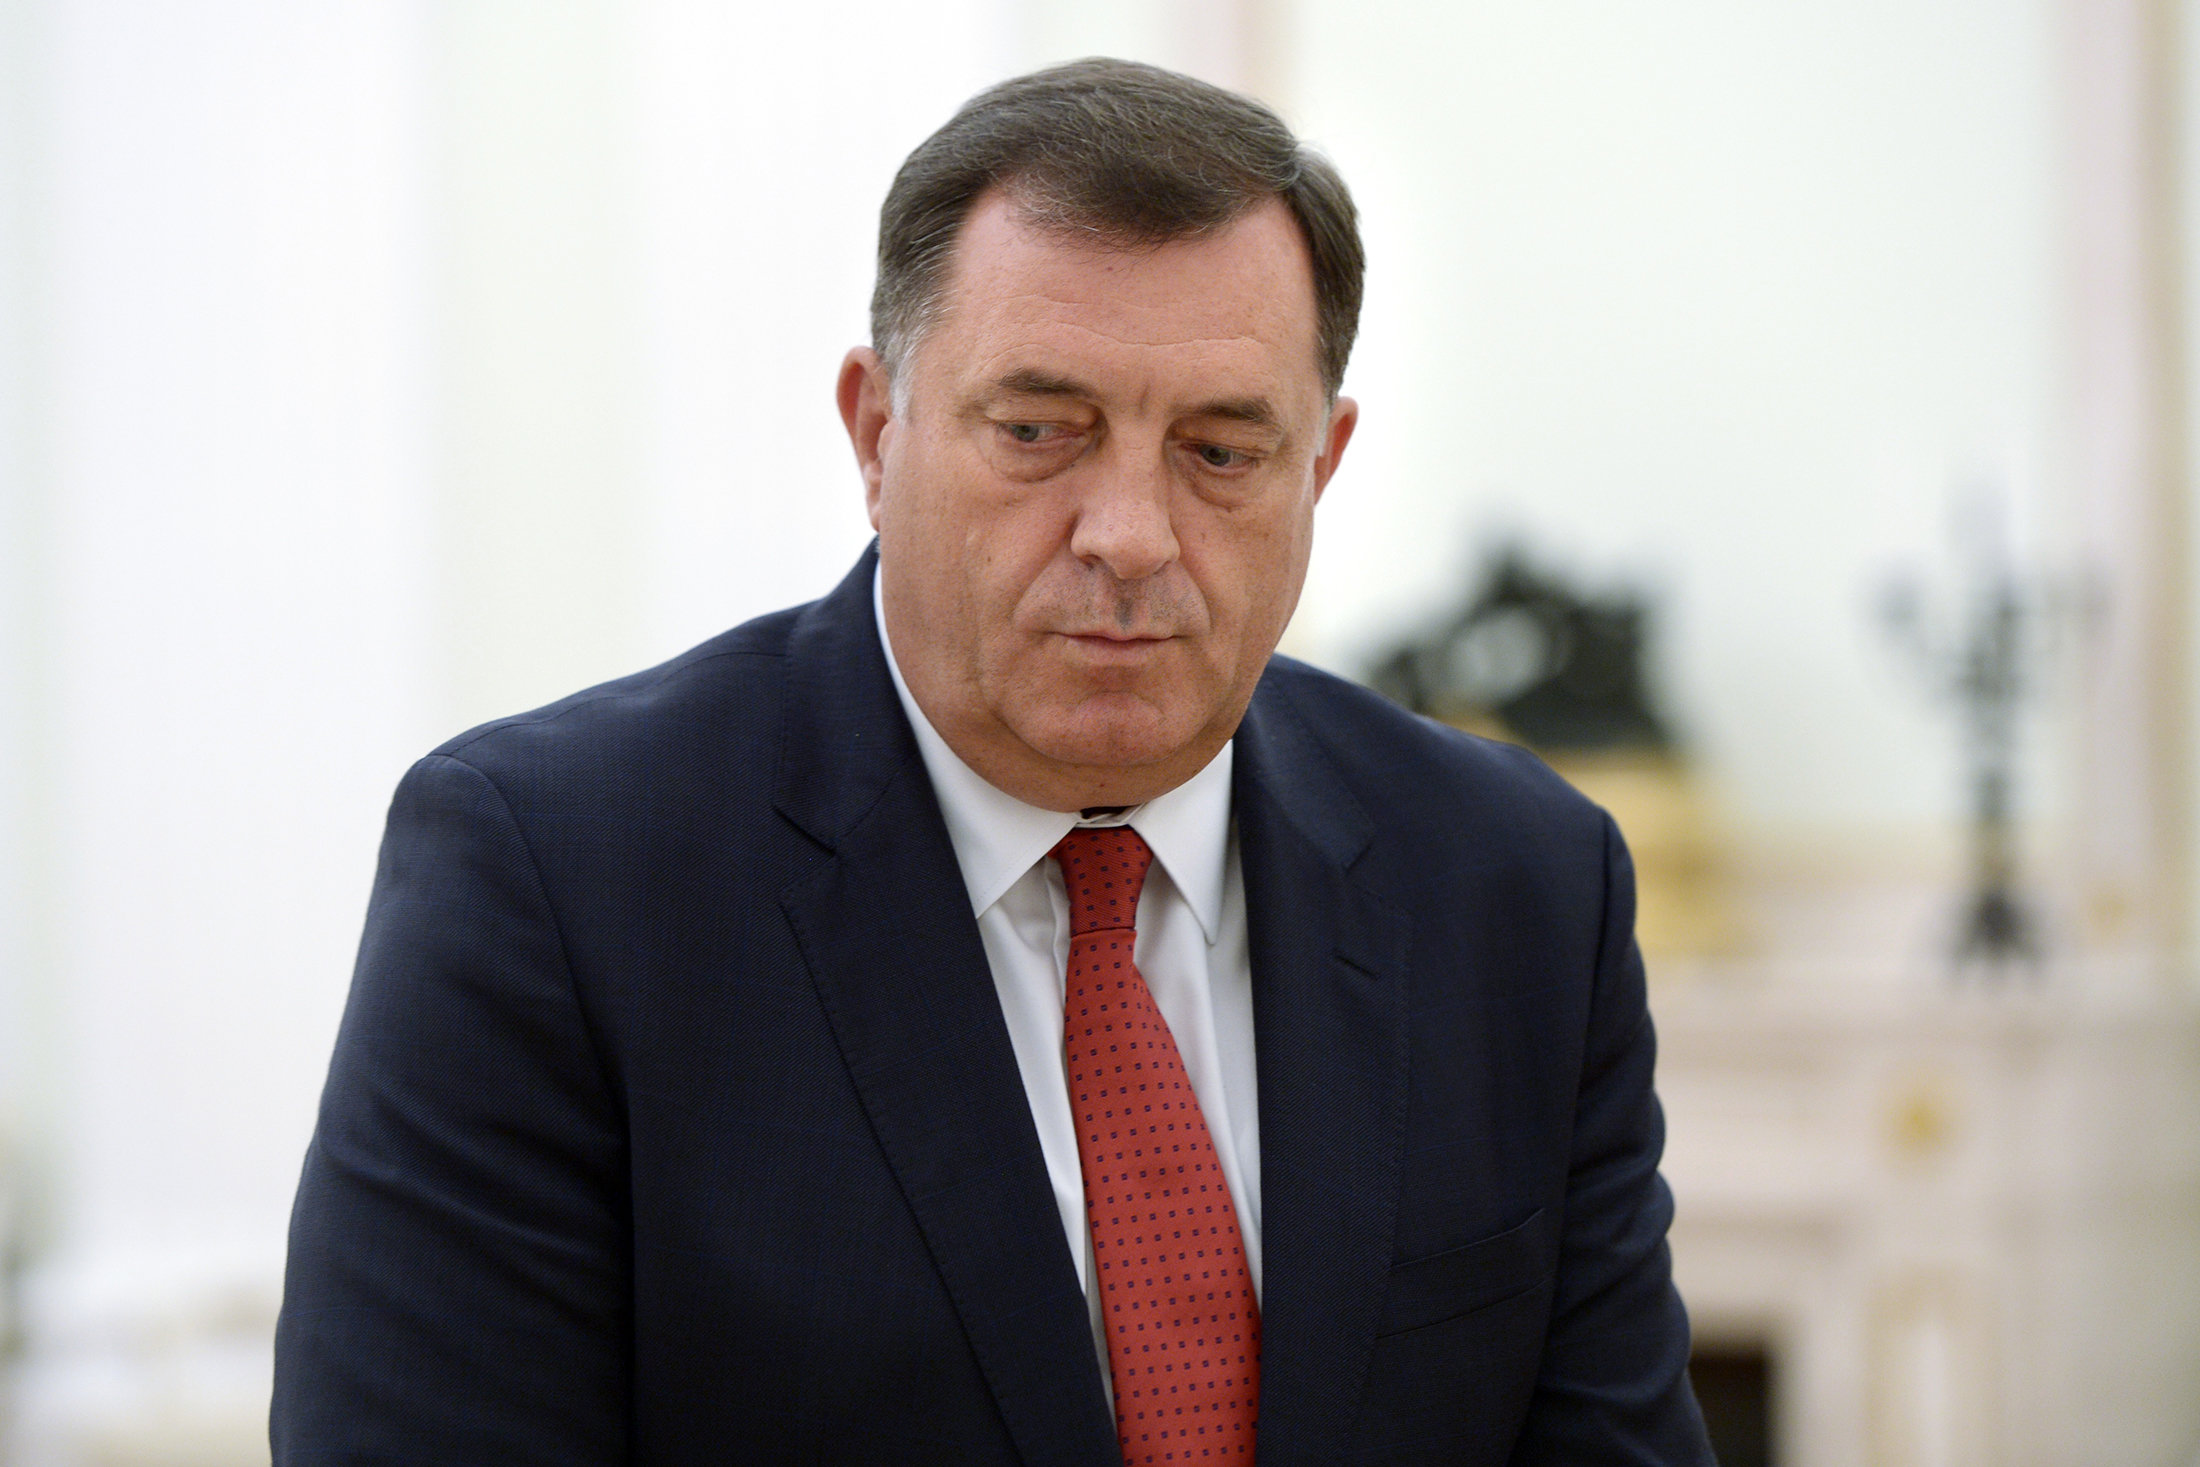 Milorad Dodik meets Putin and Shoigu in Moscow, gives respect to Russia and its President